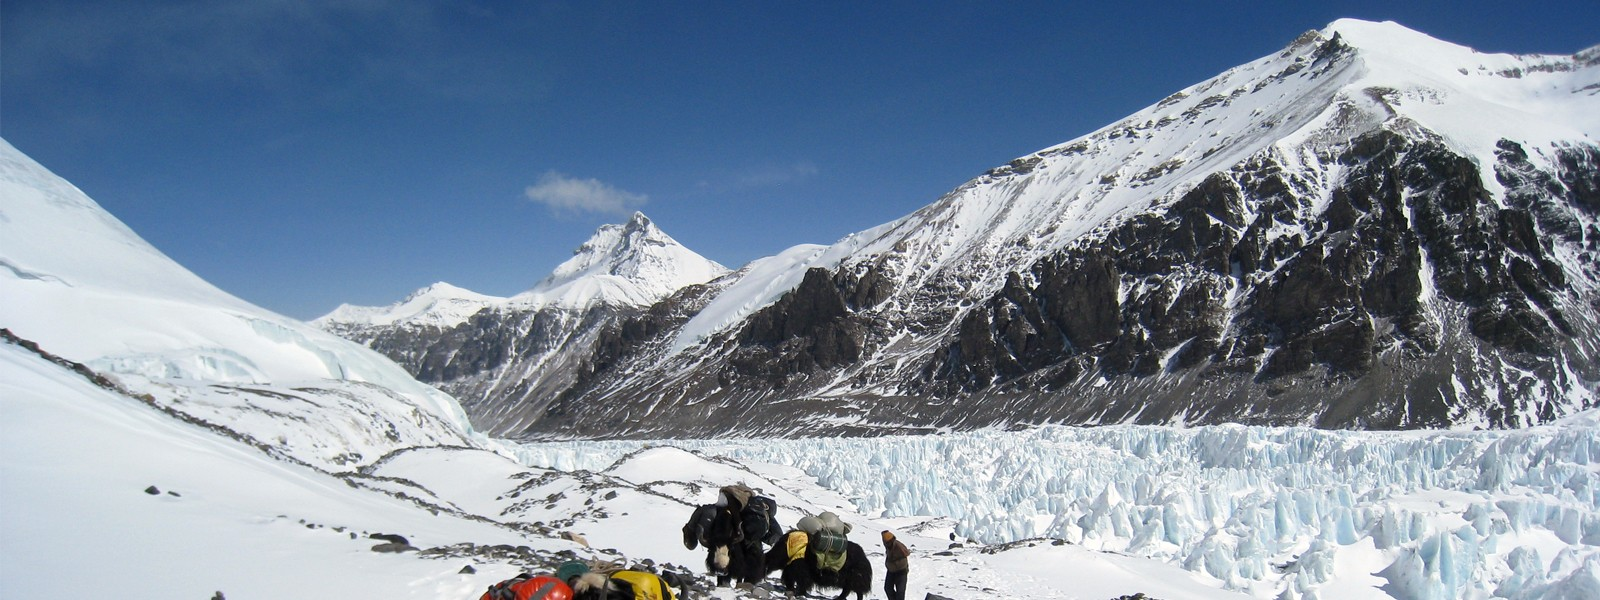 Everest North Col Expedition 2020 via Tibet